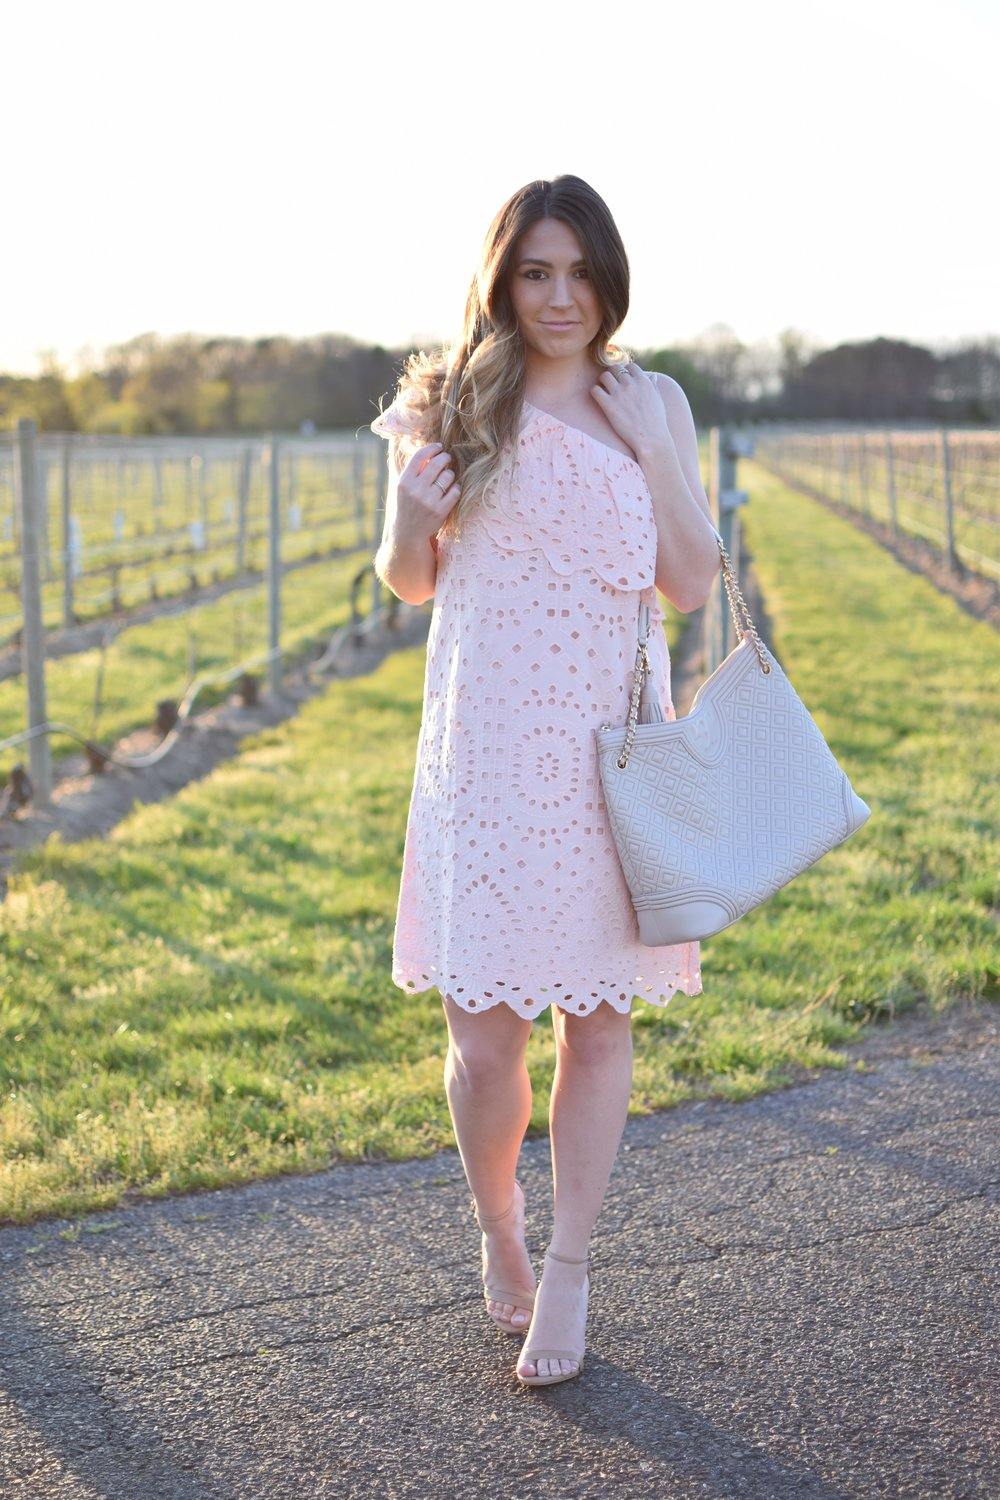 blush one shoulder dress / spring outfit idea / guest of wedding dress idea